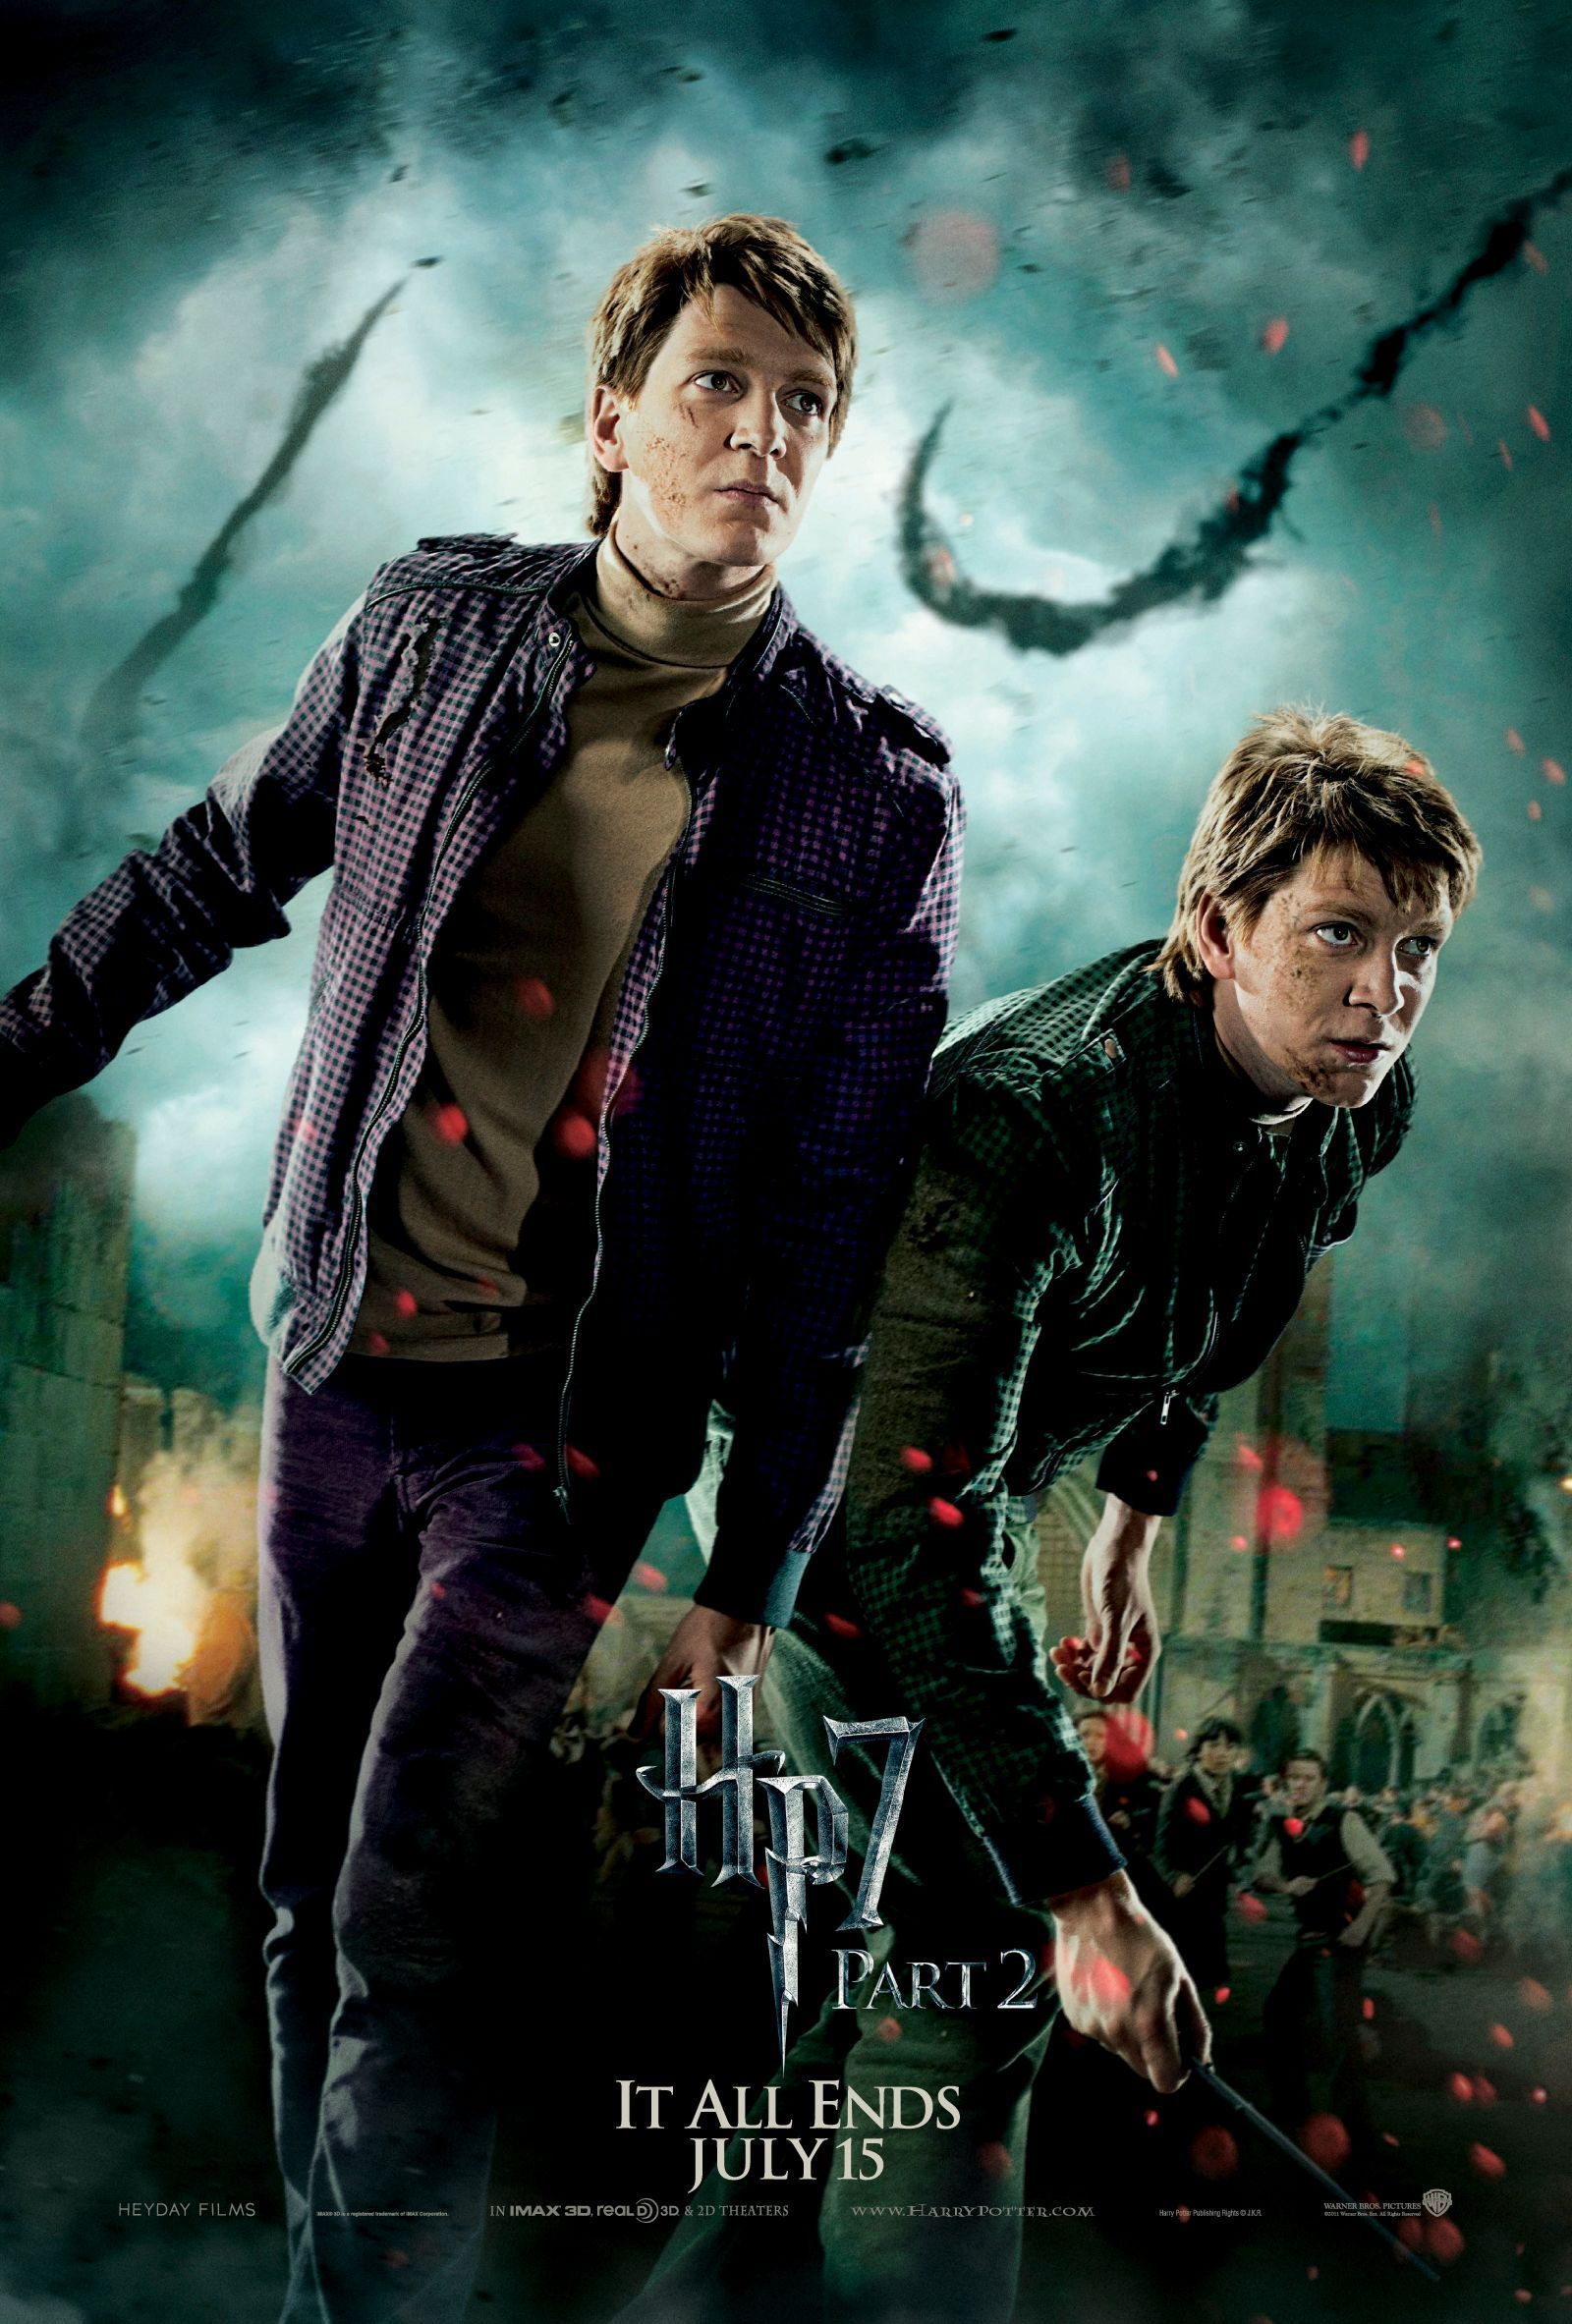 Deathly Hallows Part 2 Action Poster: The Weasley Twins [HQ]